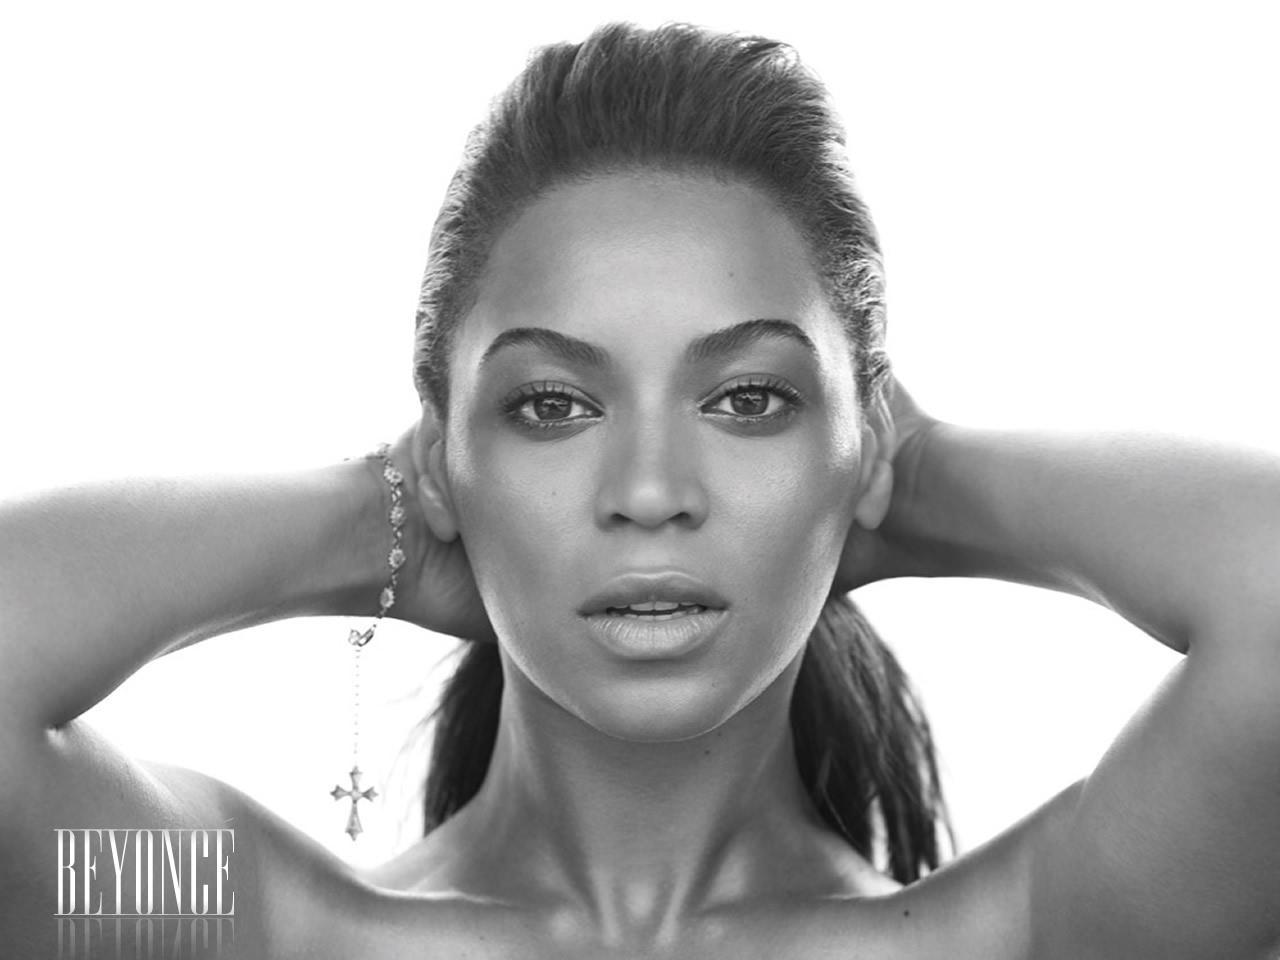 Beyonce Black And White Wallpapers 39833 in Celebrities F